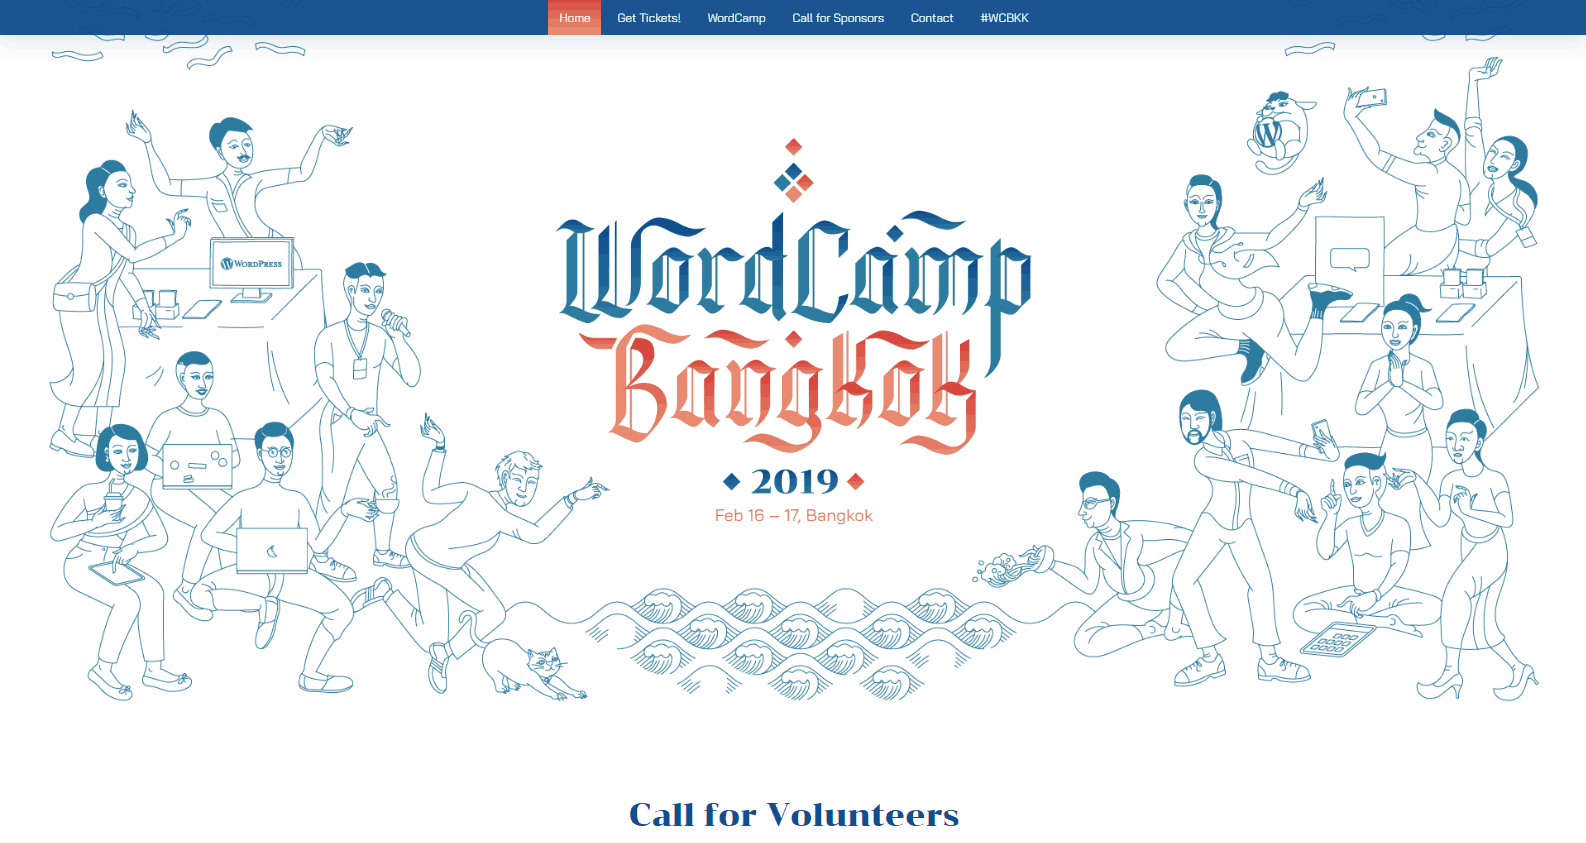 WordPress events: The WordCamp Bangkok website.